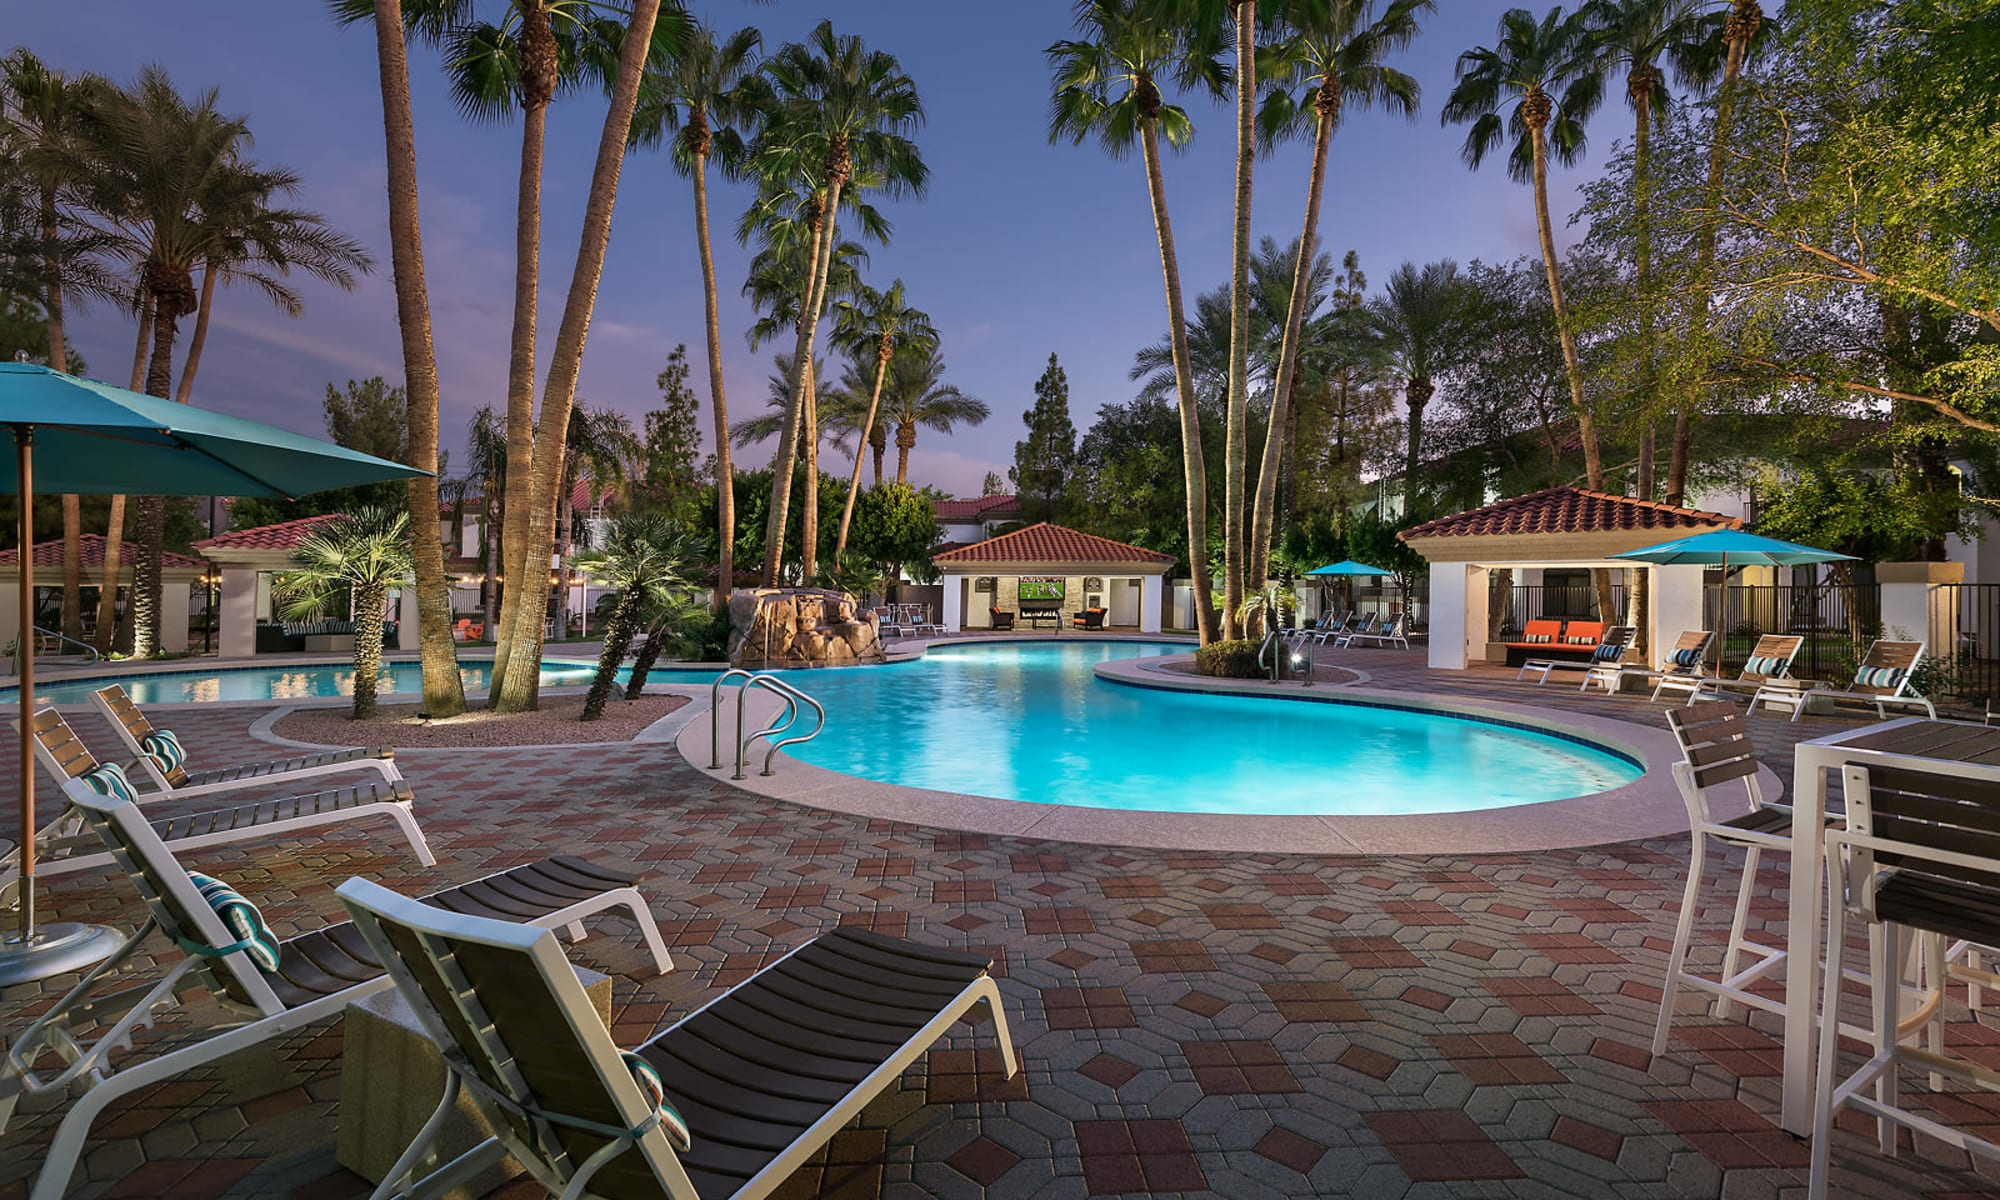 San Palmas apartments in Chandler, Arizona